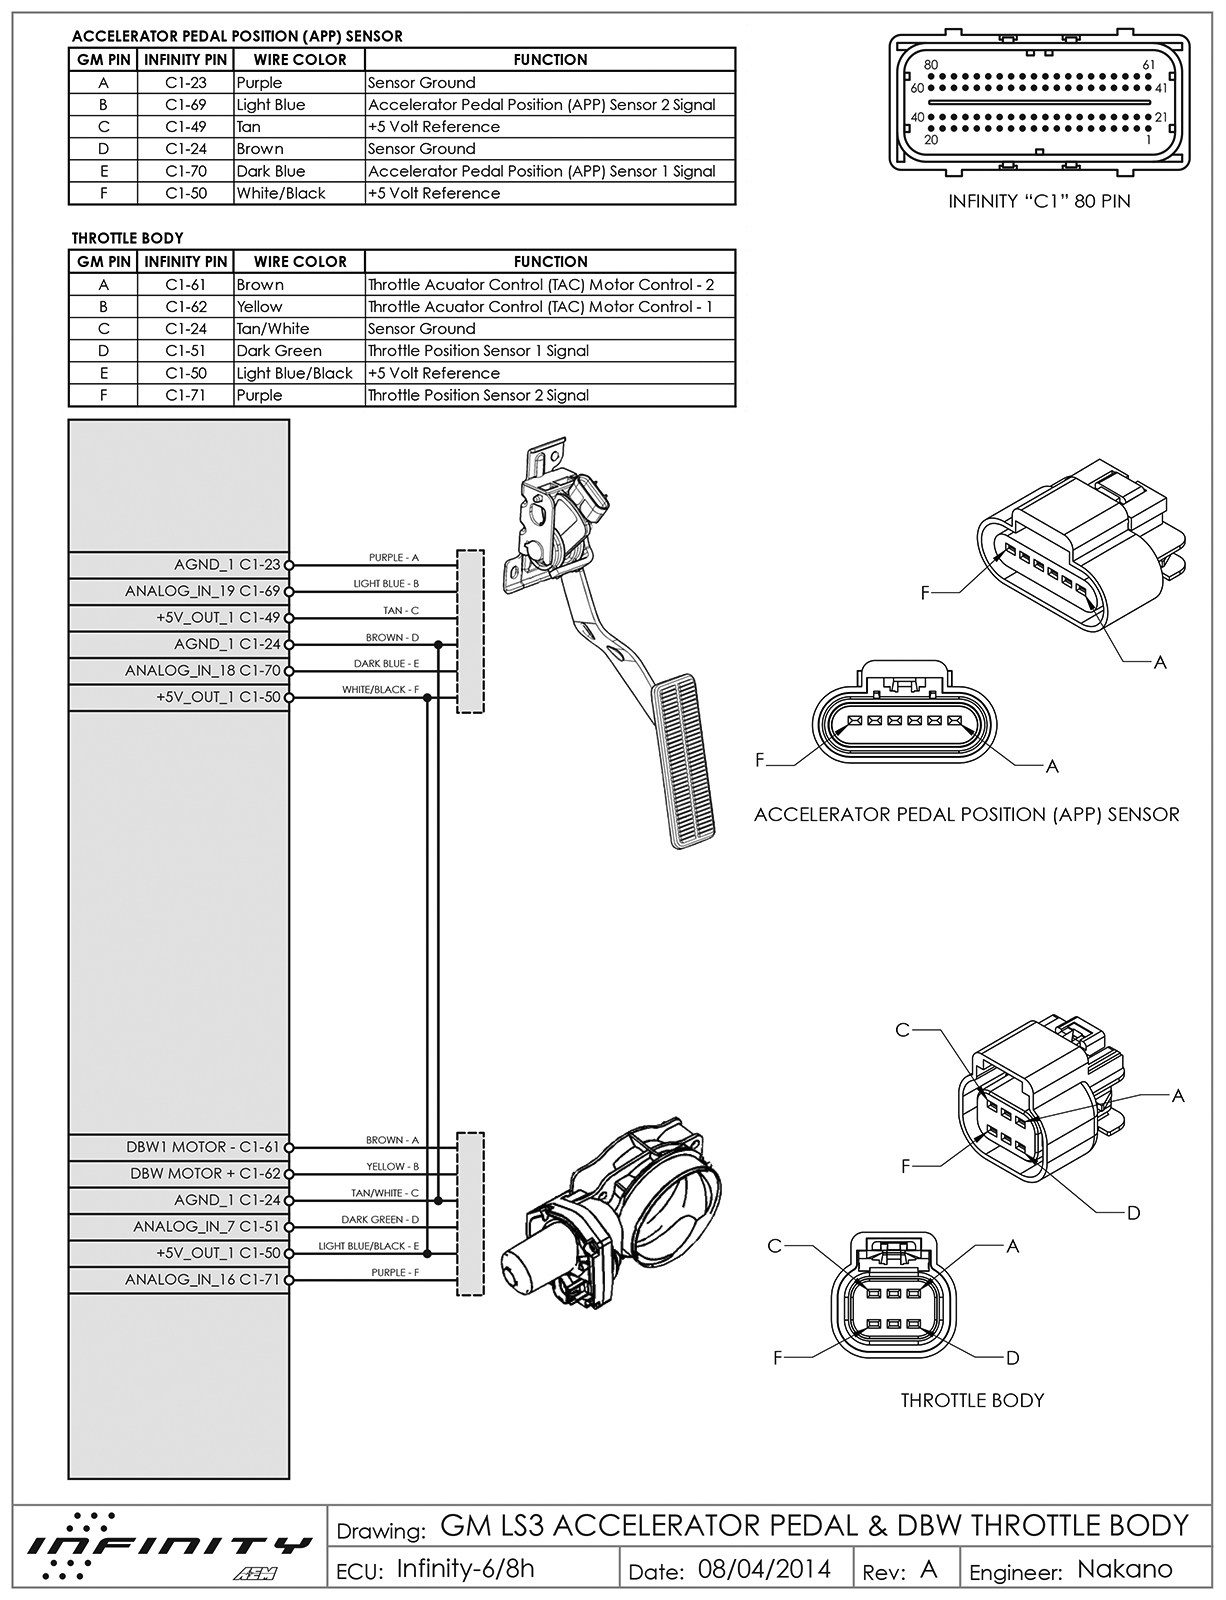 Gm Ls3 Engine Wiring Diagram | Wiring Library - Accelerator Pedal Position Sensor Wiring Diagram